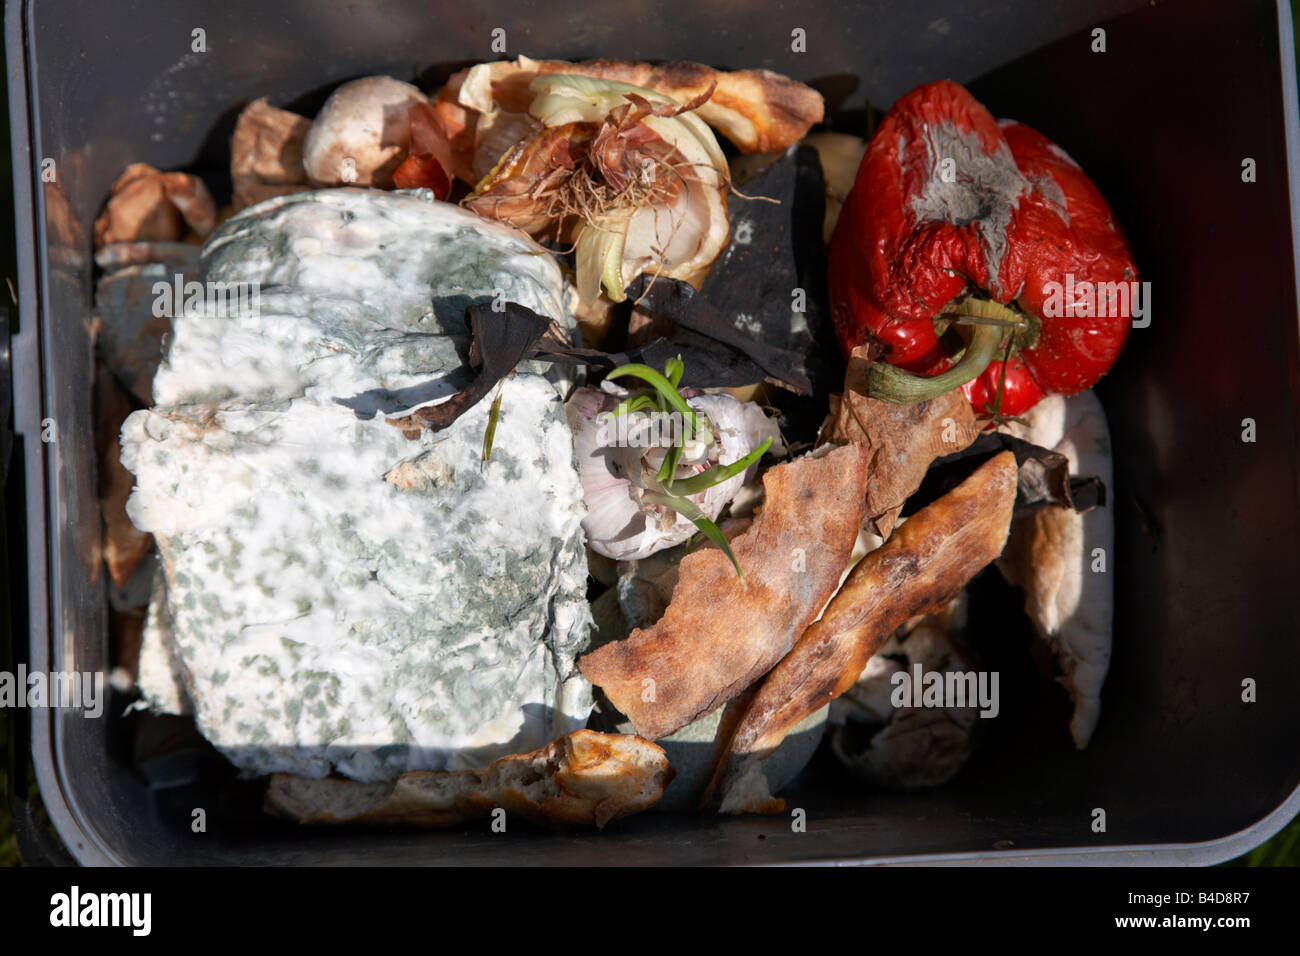 rotting wasted food thrown out by a household into a bokashi kitchen recycling bin in the uk - Stock Image